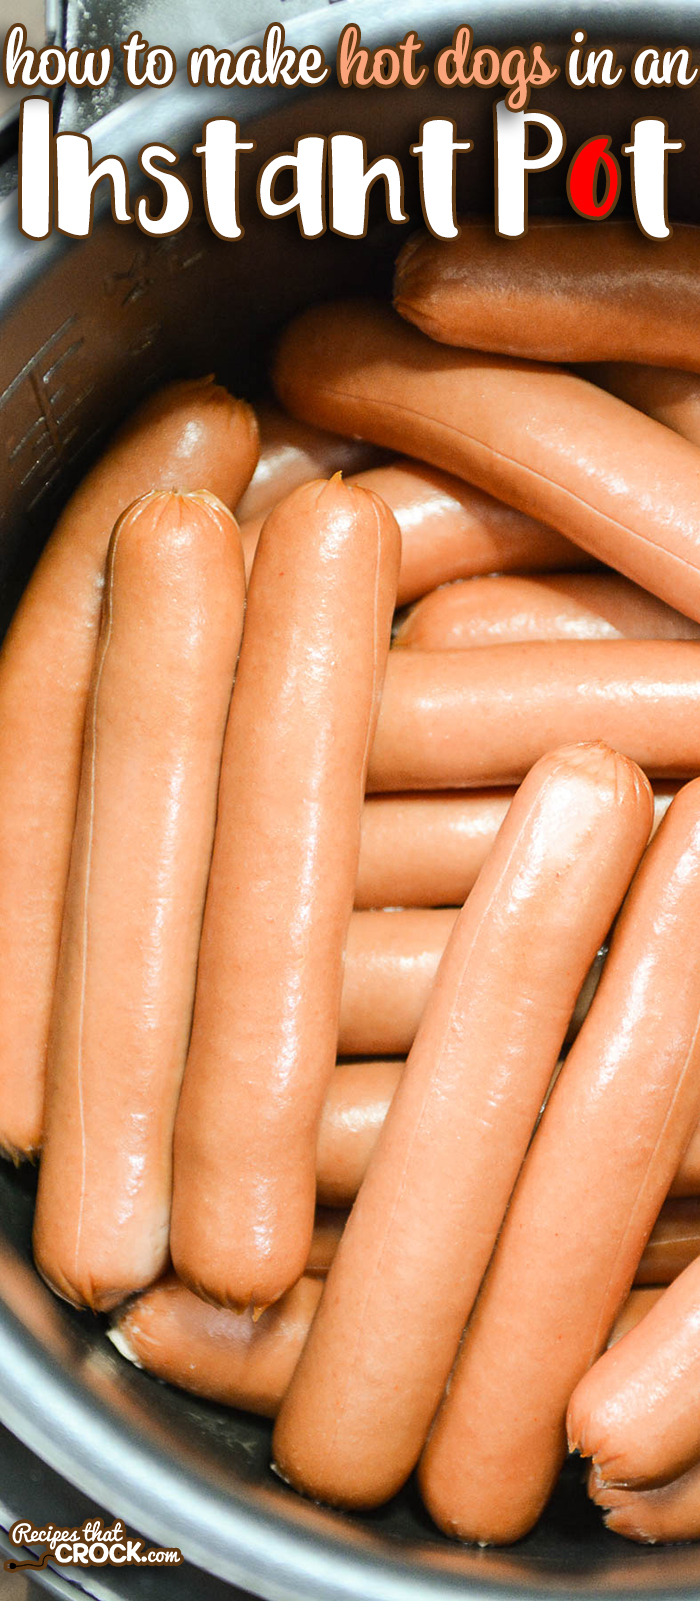 Cooking Instant pot hot dogs in bulk is very easy. Learning how to use an electric pressure cooker to steam hot dogs is a great tip for parties and potlucks.